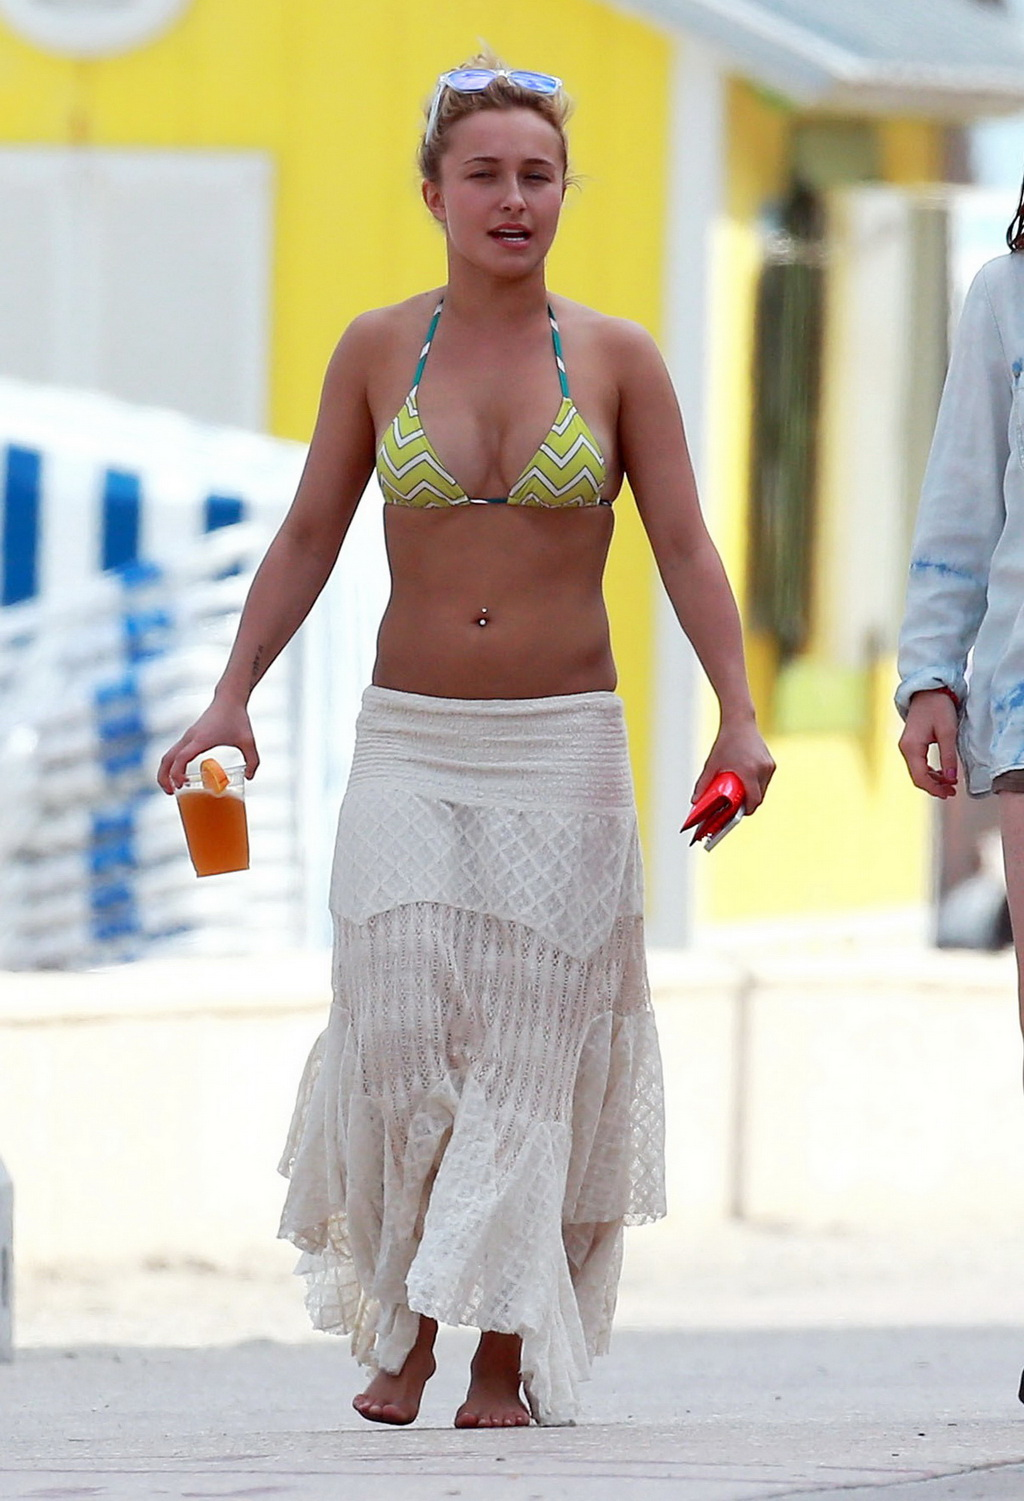 Hayden Panettiere wearing a bikini top & skirt out in Miami